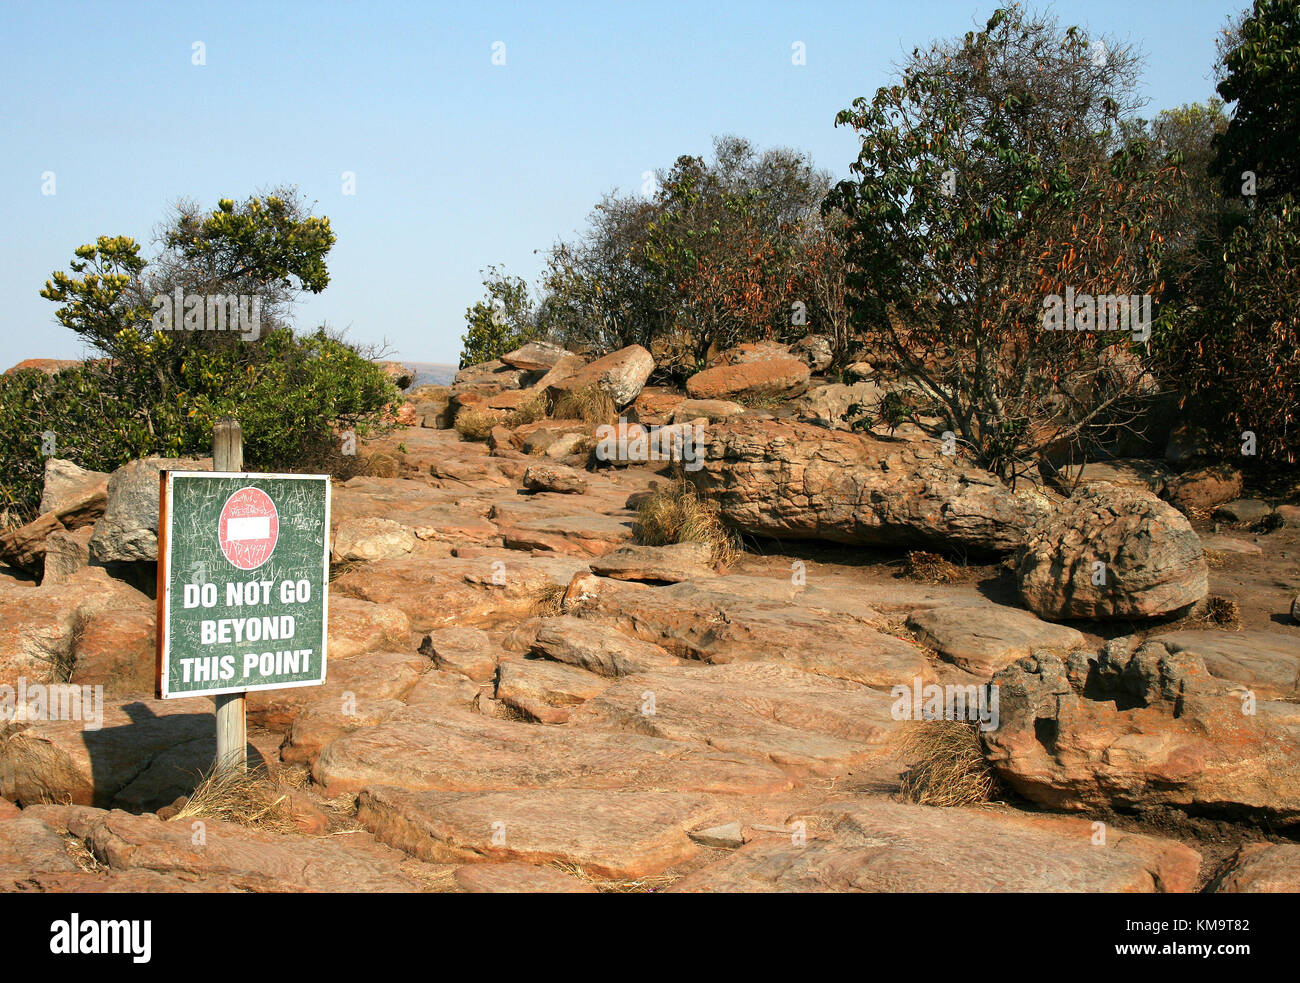 Mpumalanga, South Africa, no entry sign on rocky pathway - Stock Image